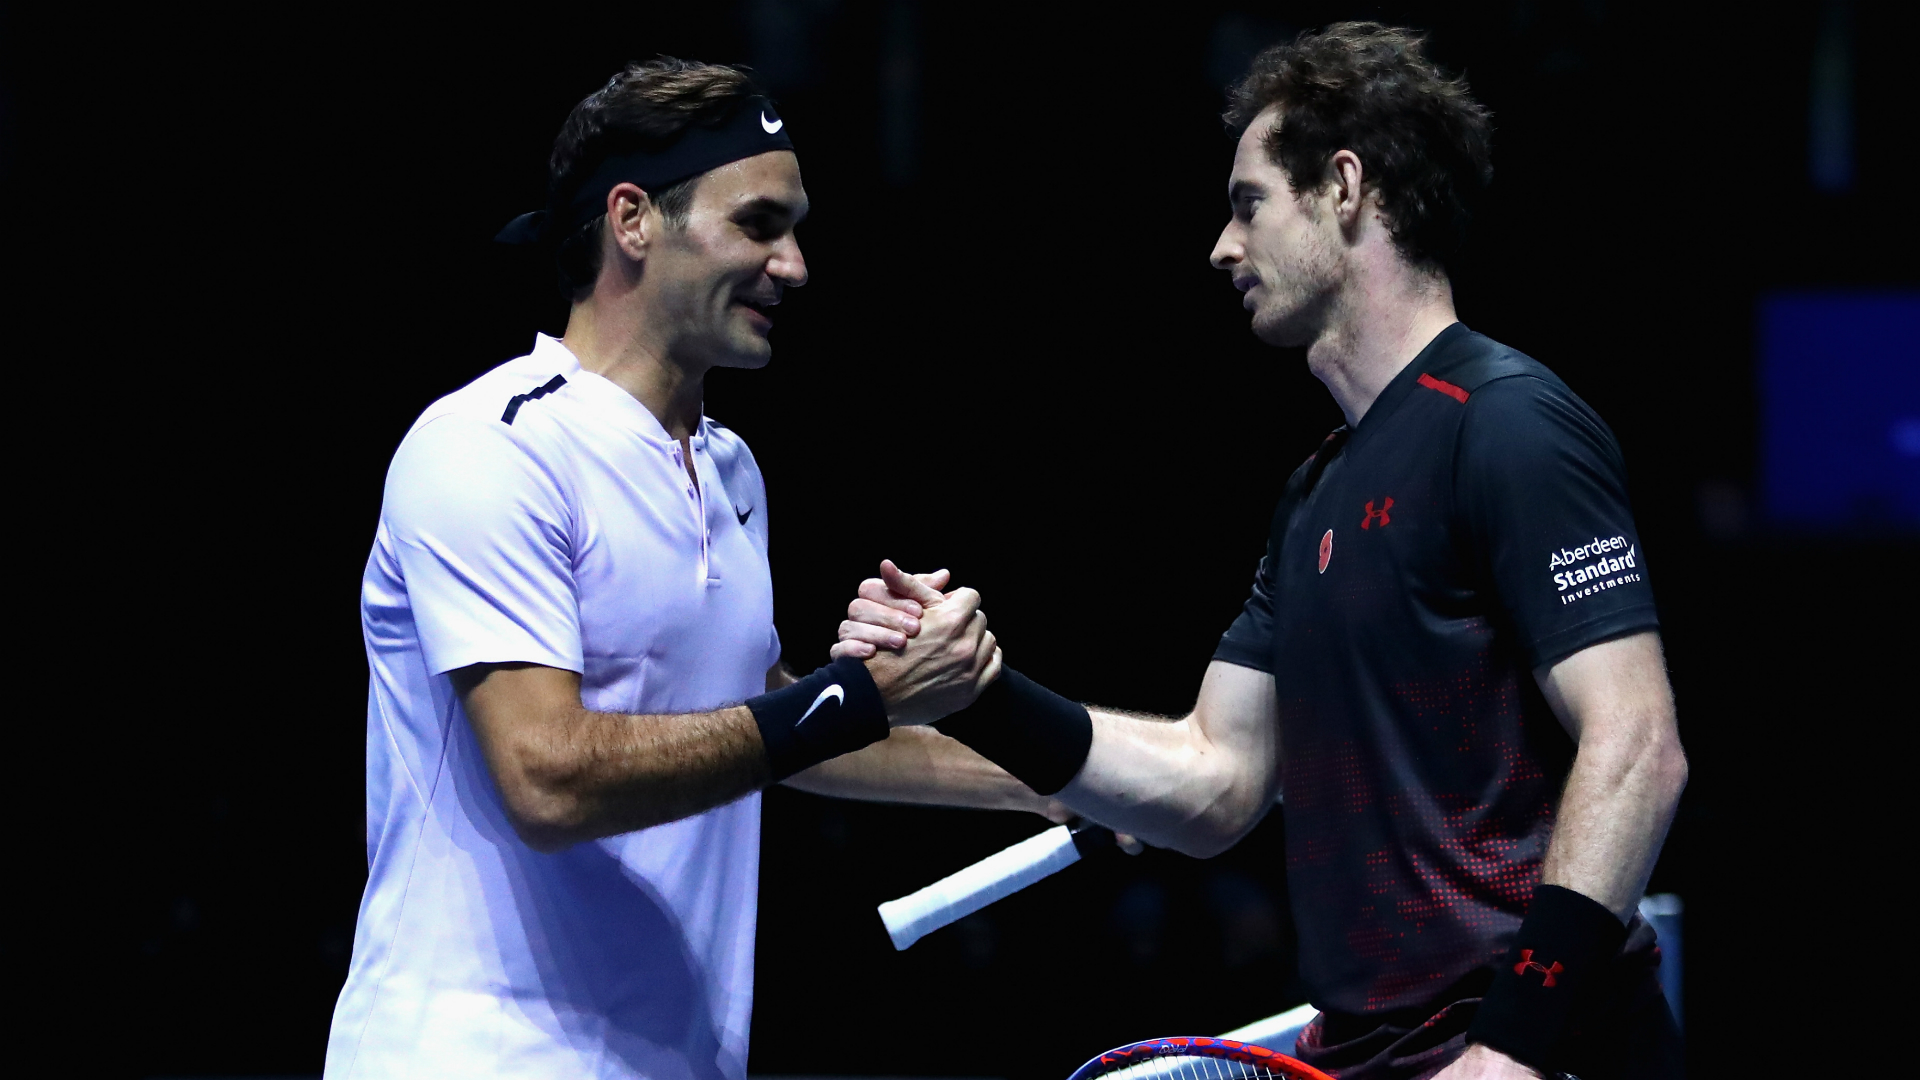 Roger Federer reacted to Andy Murray's plan to retire from tennis amid his injury woes.